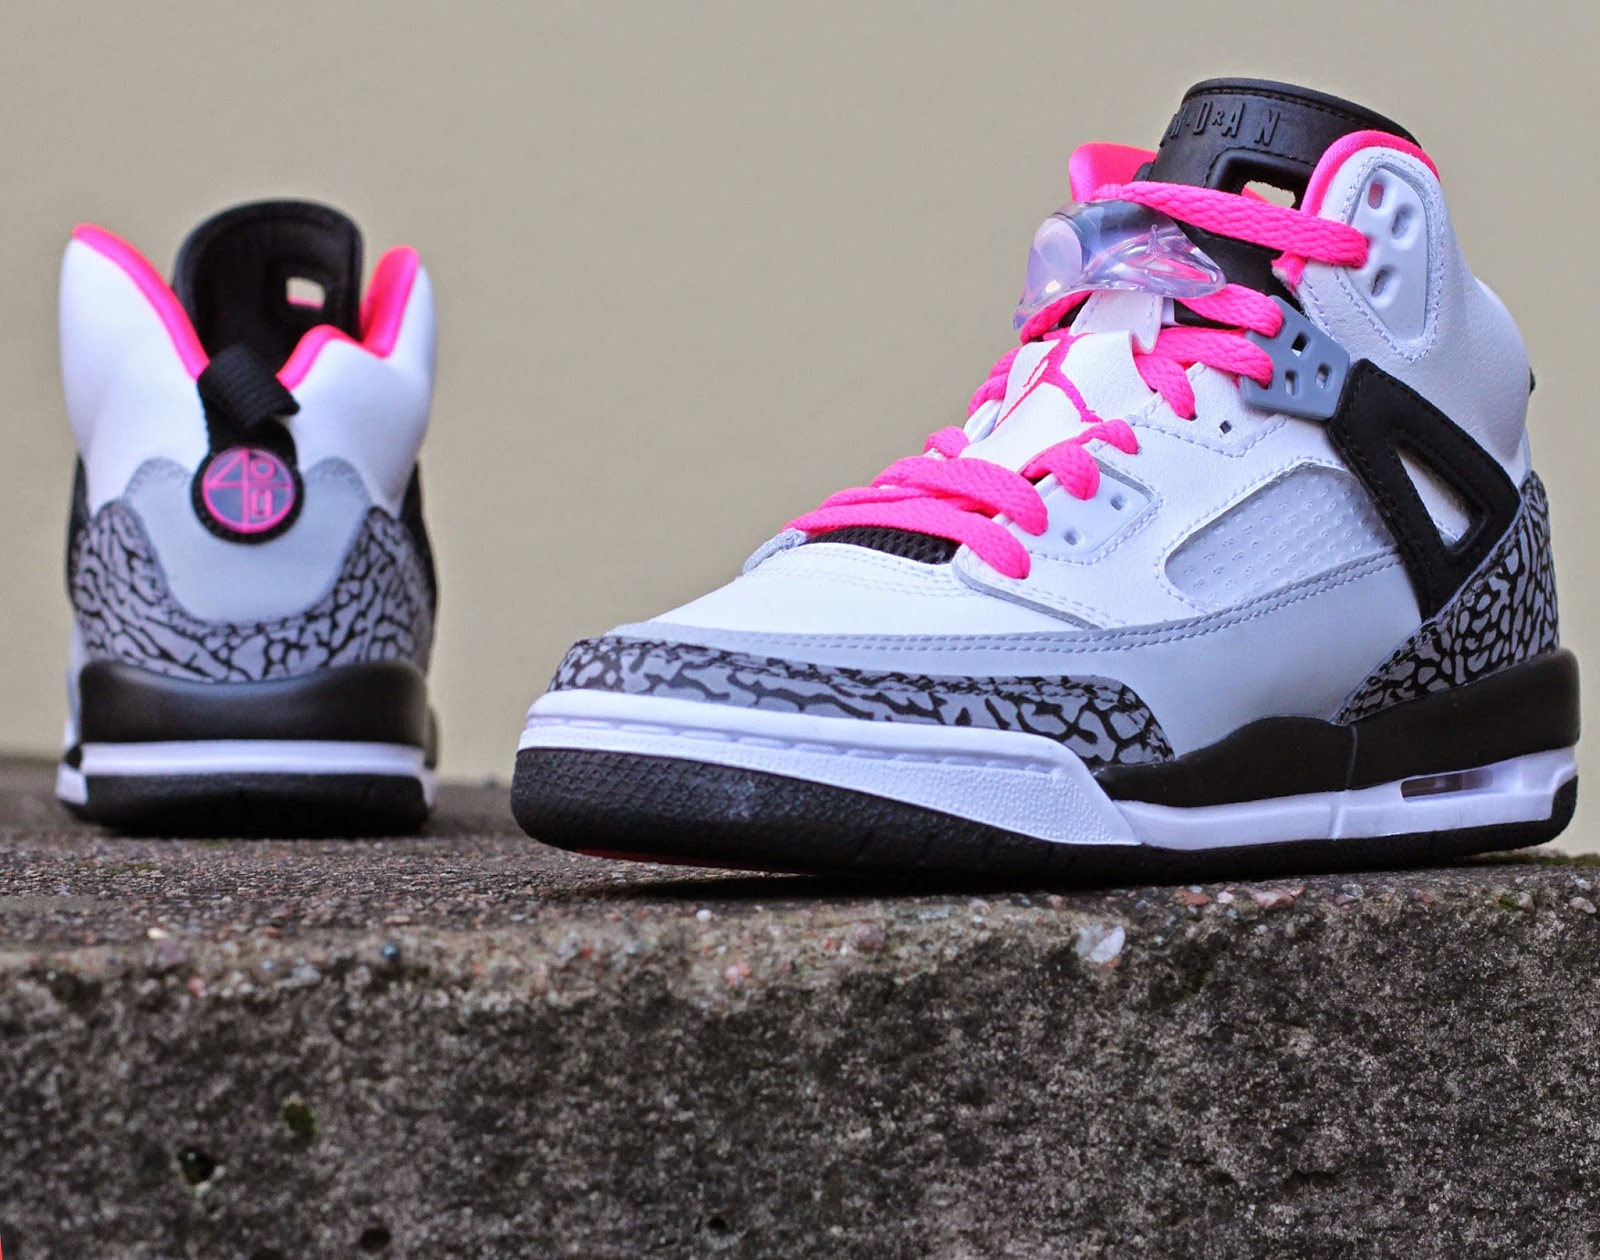 http://www.footish.se/sneakers/nike-air-jordan-spizike-gg